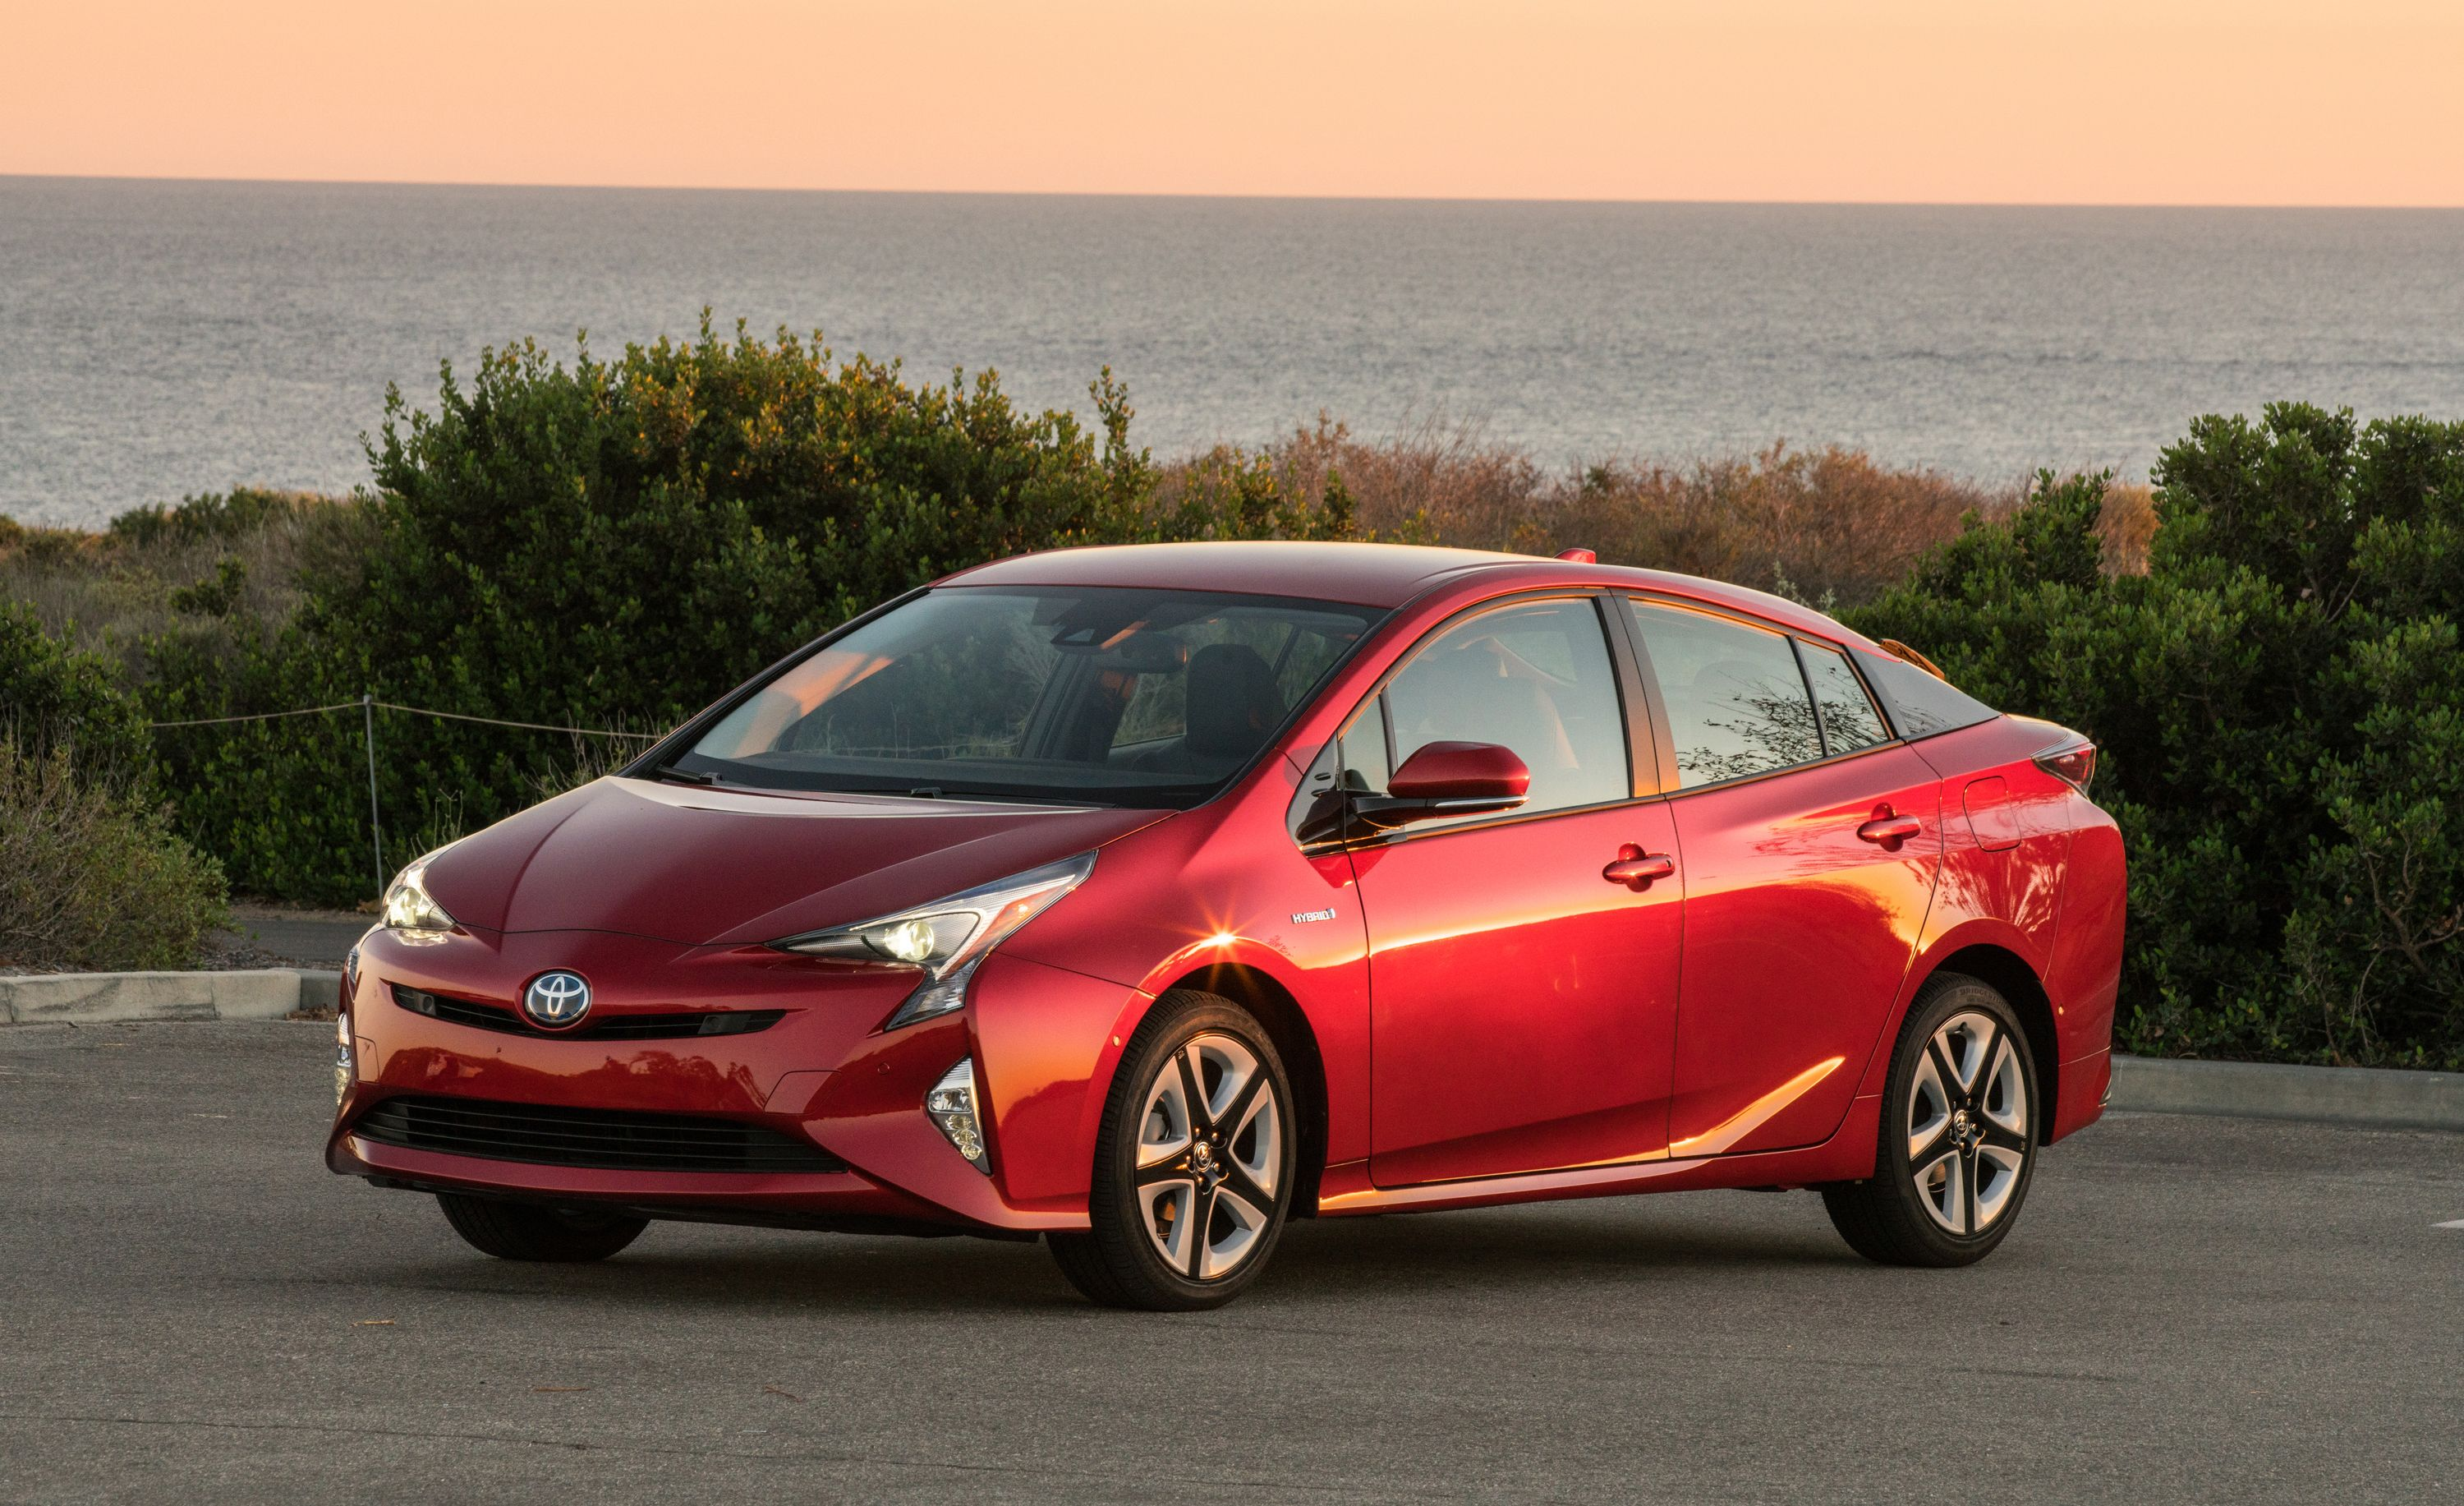 Engine Fire Risk Forces Recall Of 20162018 Toyota Prius Wire Harness Sleeve